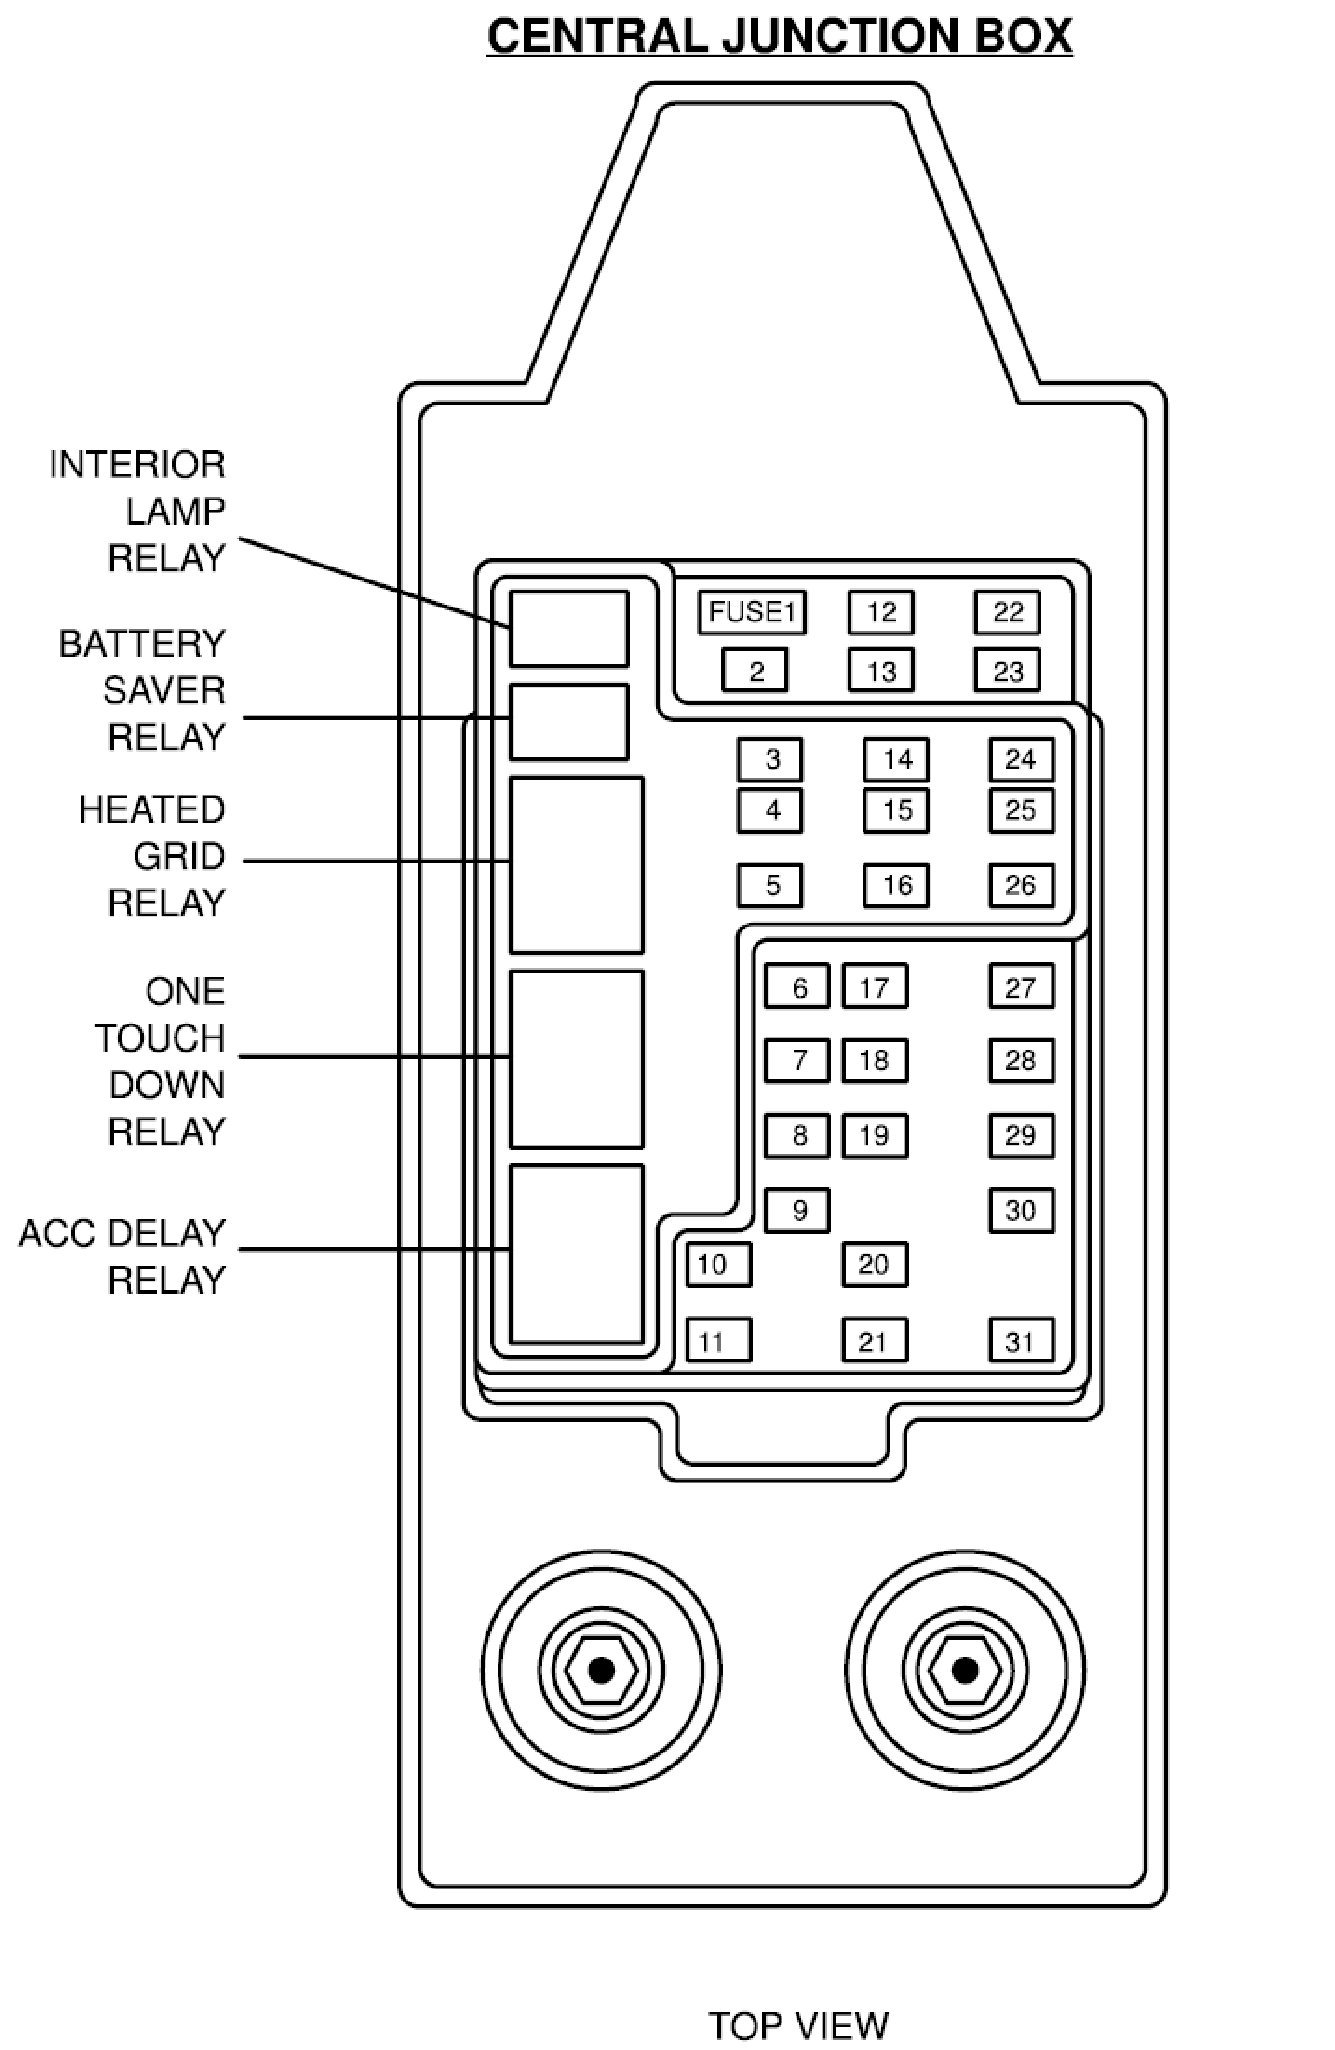 2010 12 19_150321_zbatt ihave 2001 ford expedition all of the sudden the power door locks 2001 ford expedition interior fuse box diagram at soozxer.org